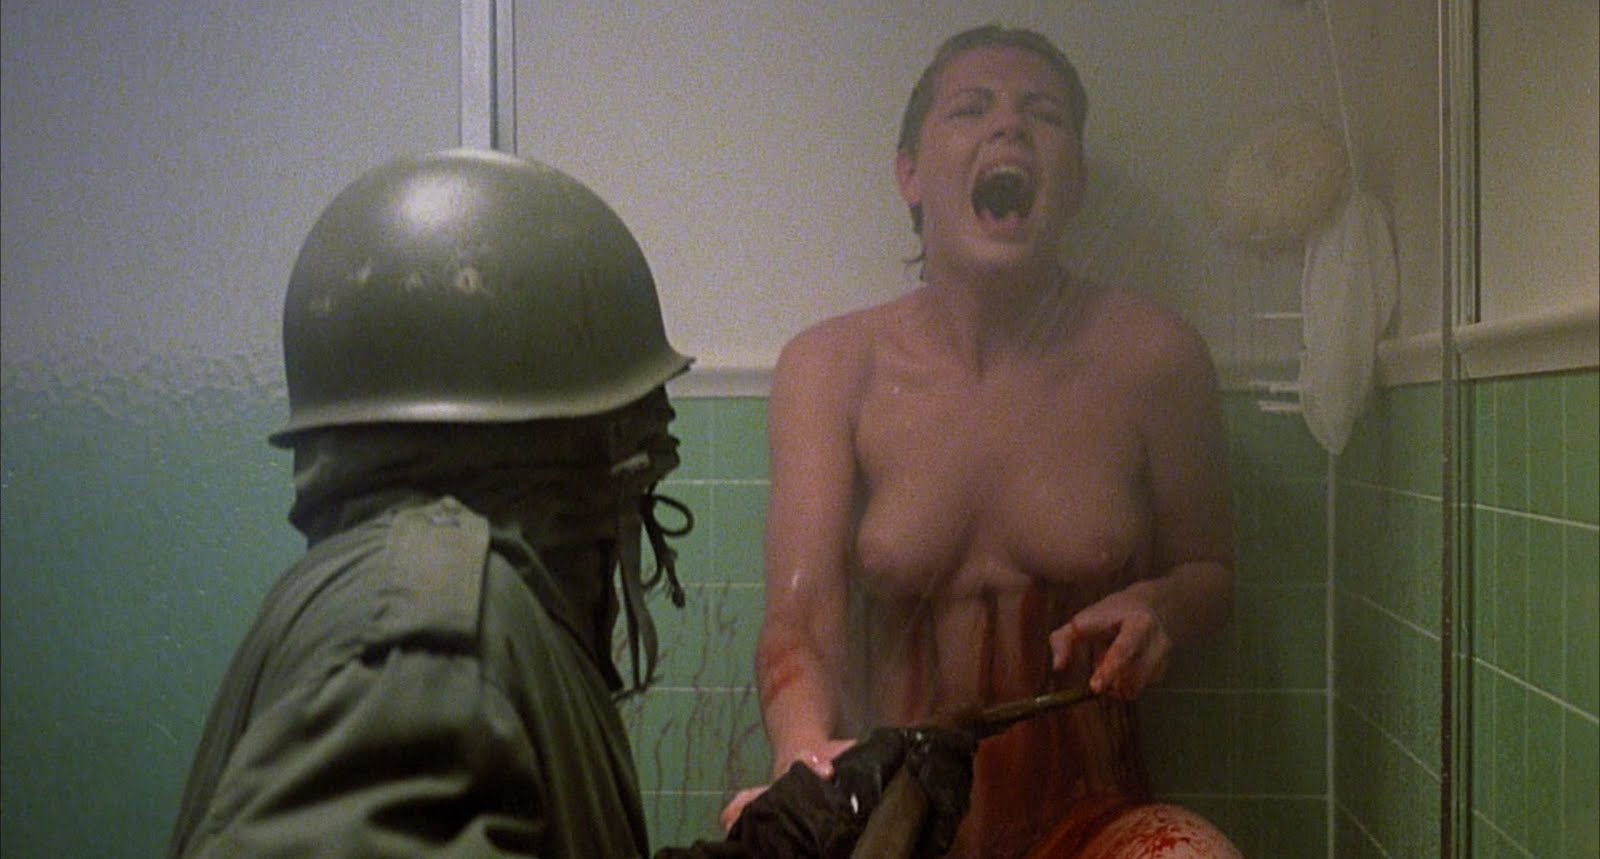 http://sinsofcinema.com/Images/The%20Prowler/The%20Prowler%20Blu-Ray%20Blue%20Underground.jpg